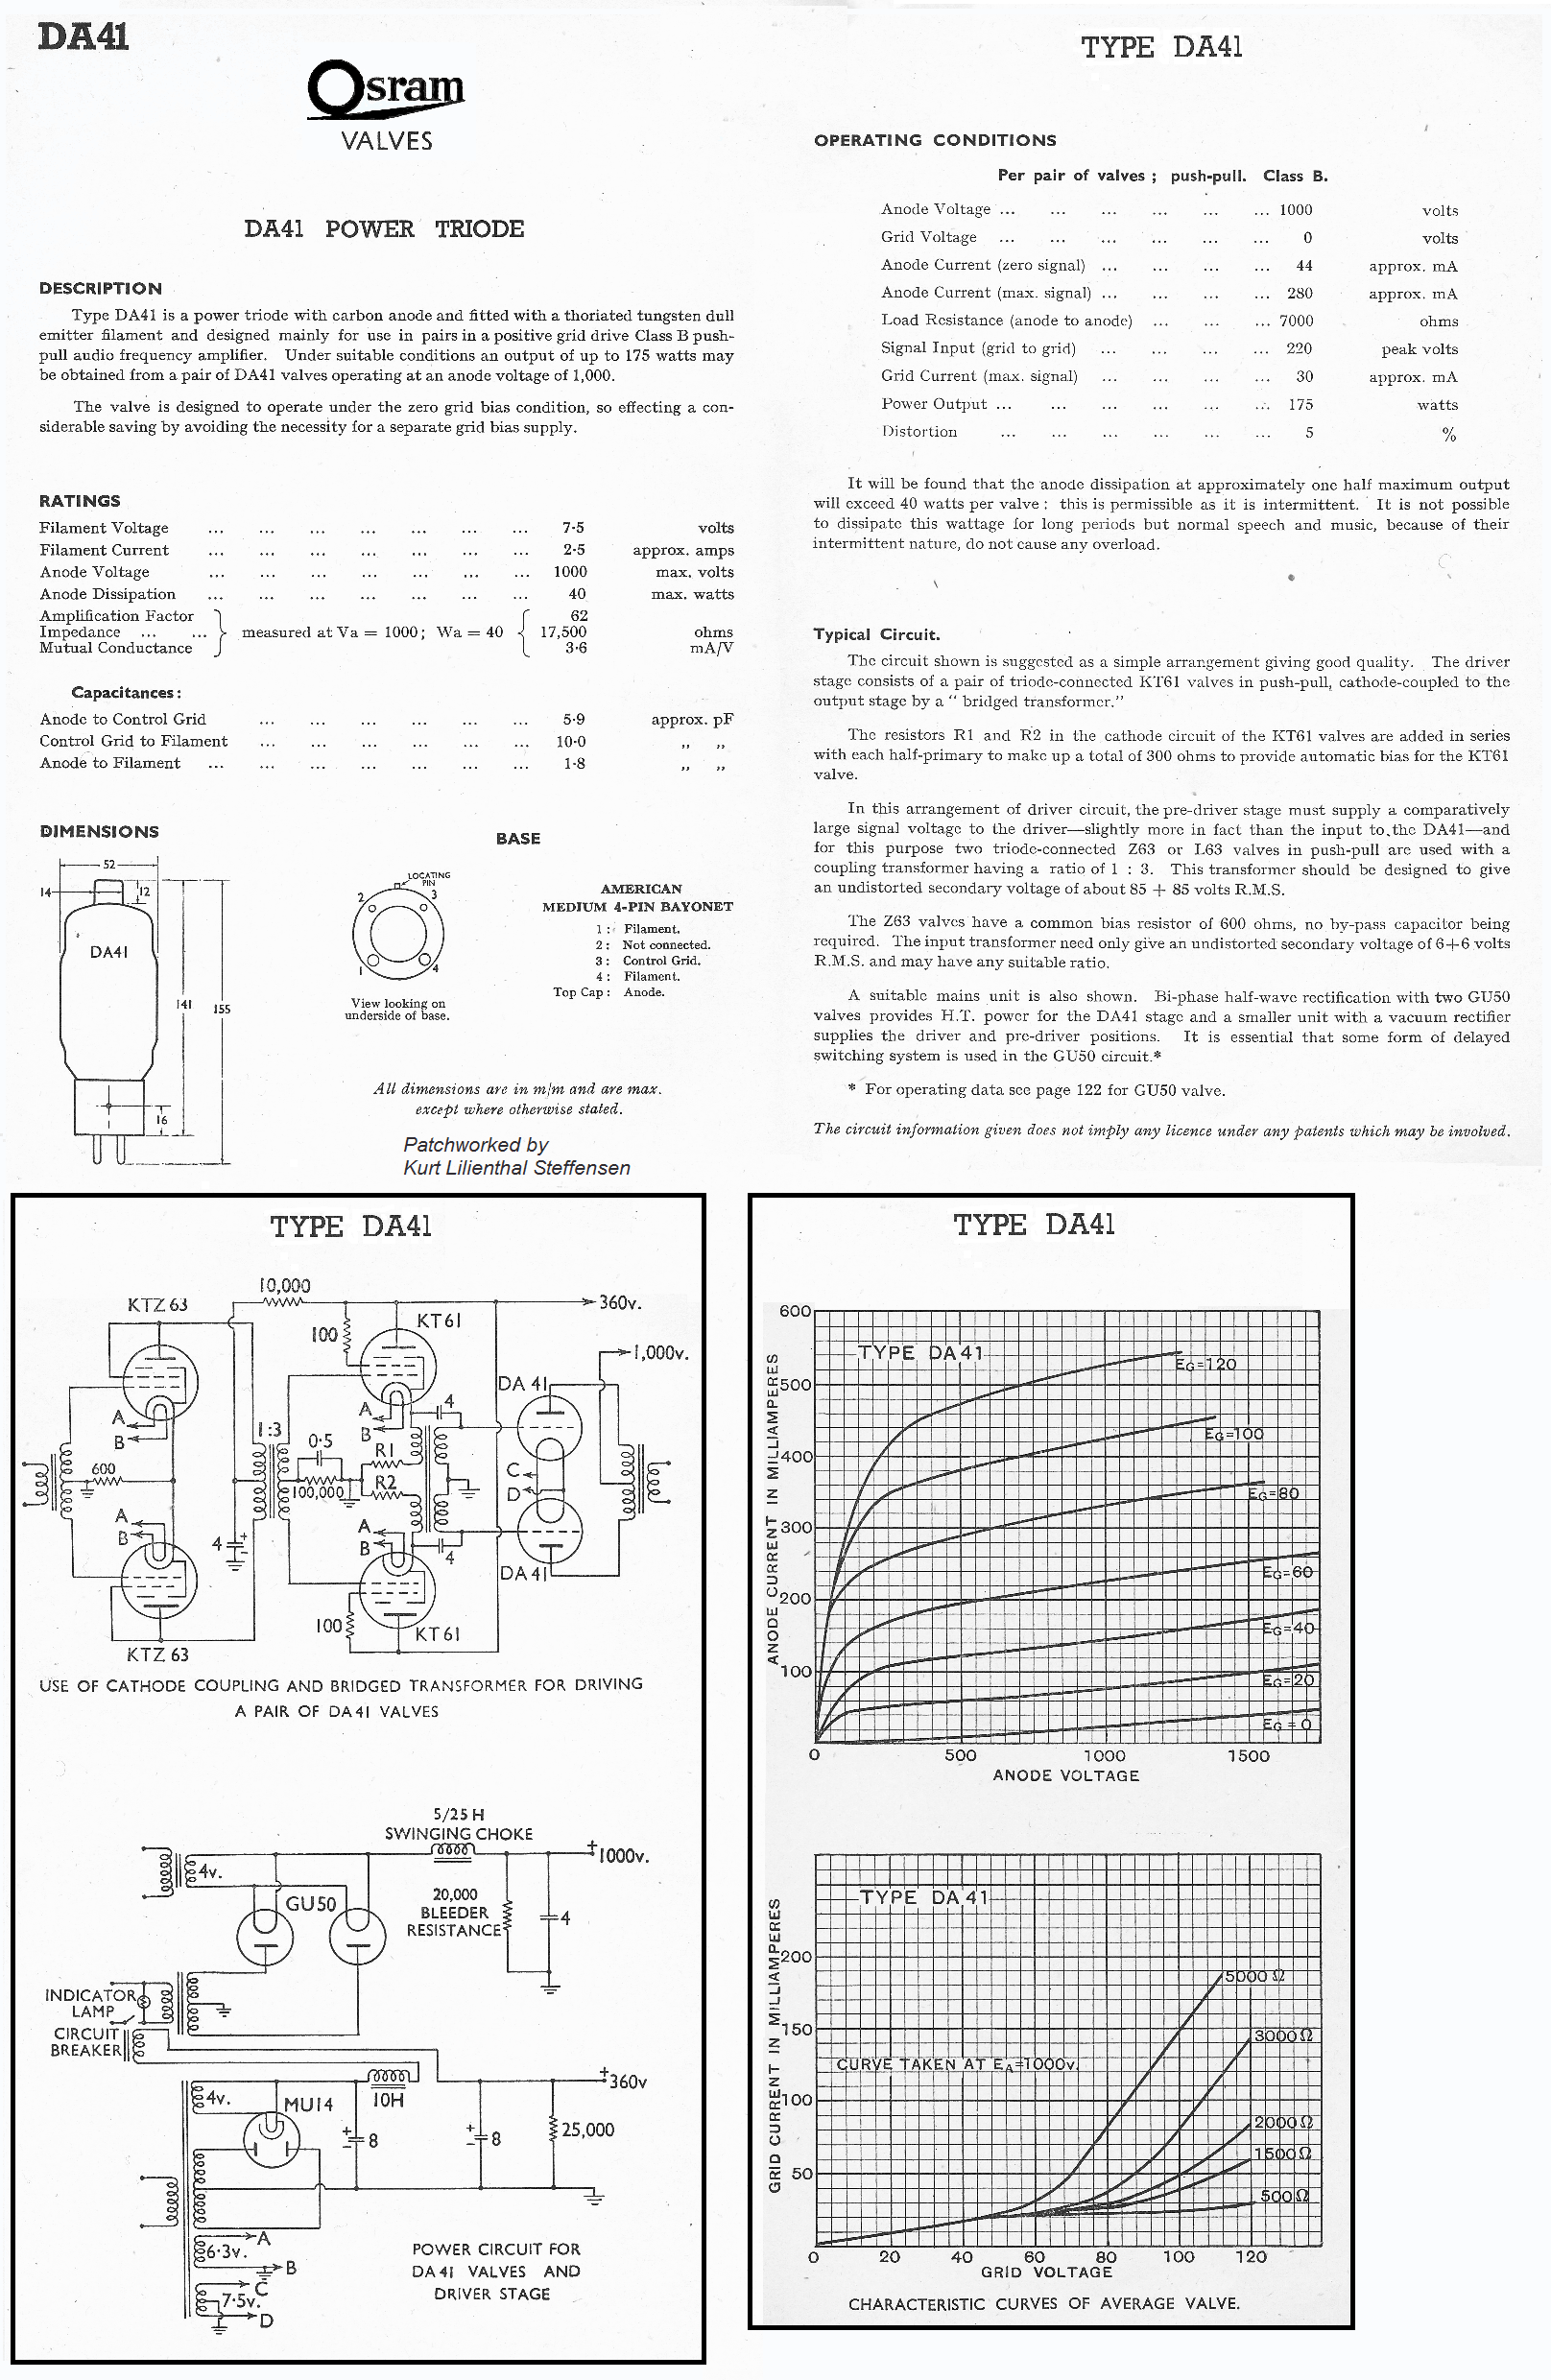 100 Amplifiers Part 1 1916 45 Lilienthal Engineering Switch Wiring Together With 220 Volt Single Phase Motor Diagram Da41 Osram Application Ed